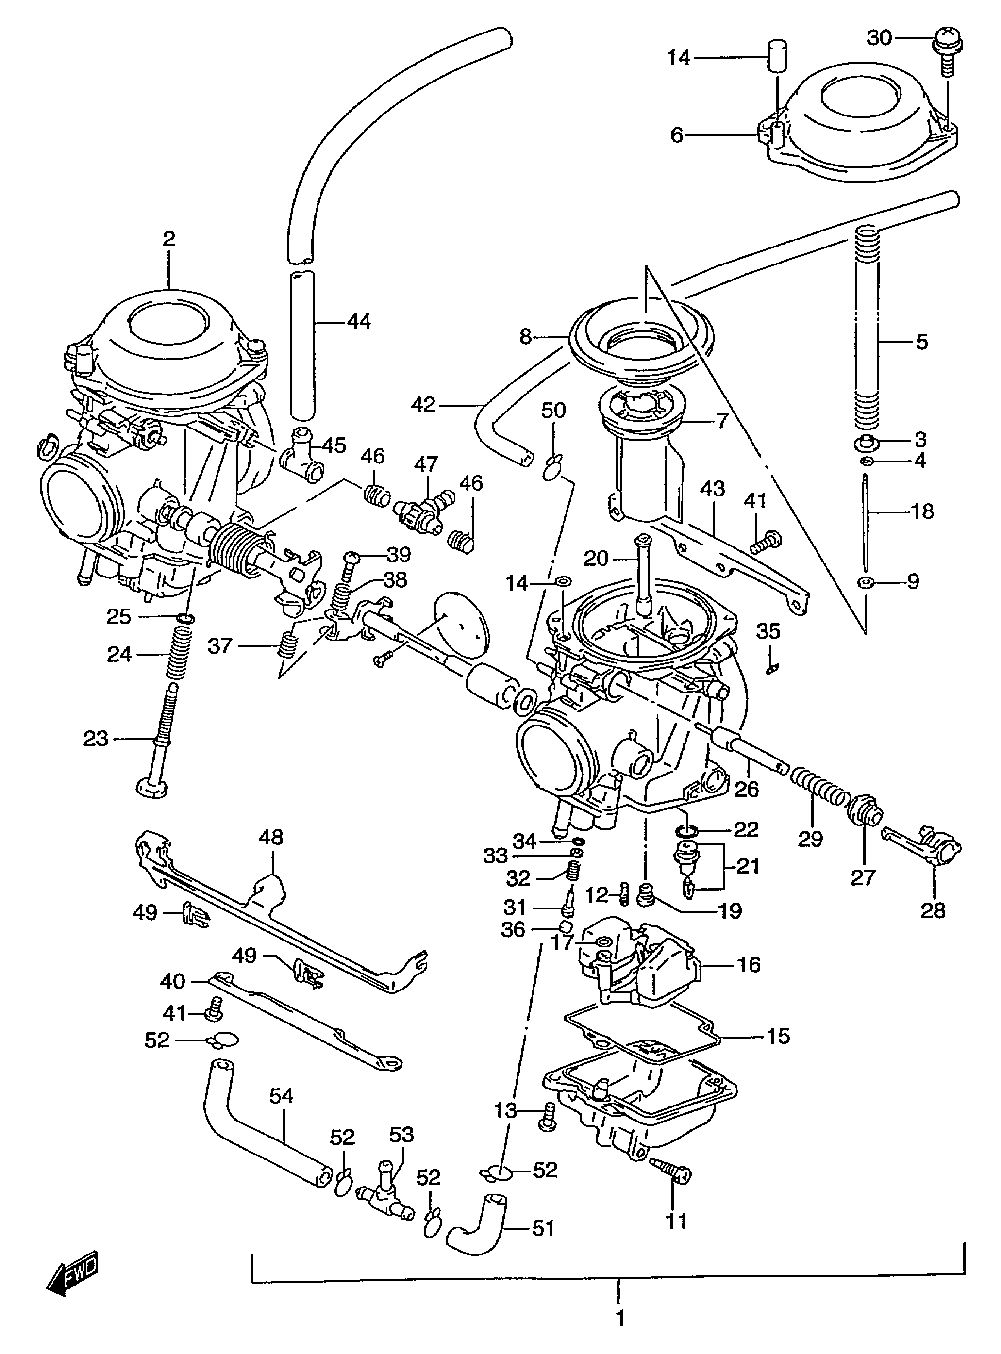 1995 chevy blazer fuel system diagram  1995  free engine